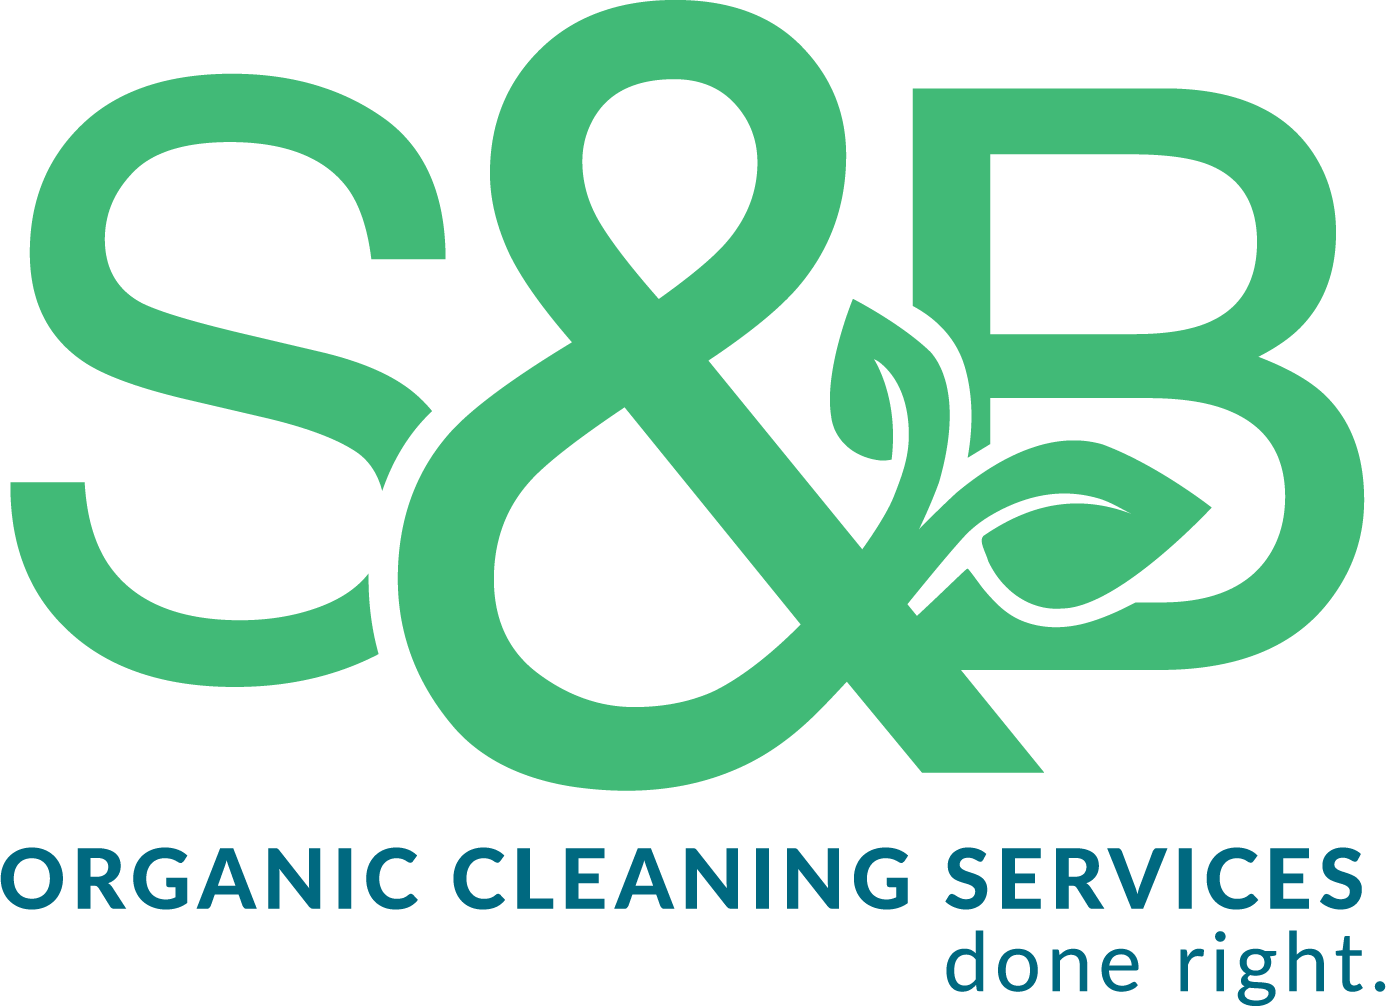 S&B Organic Cleaning Services